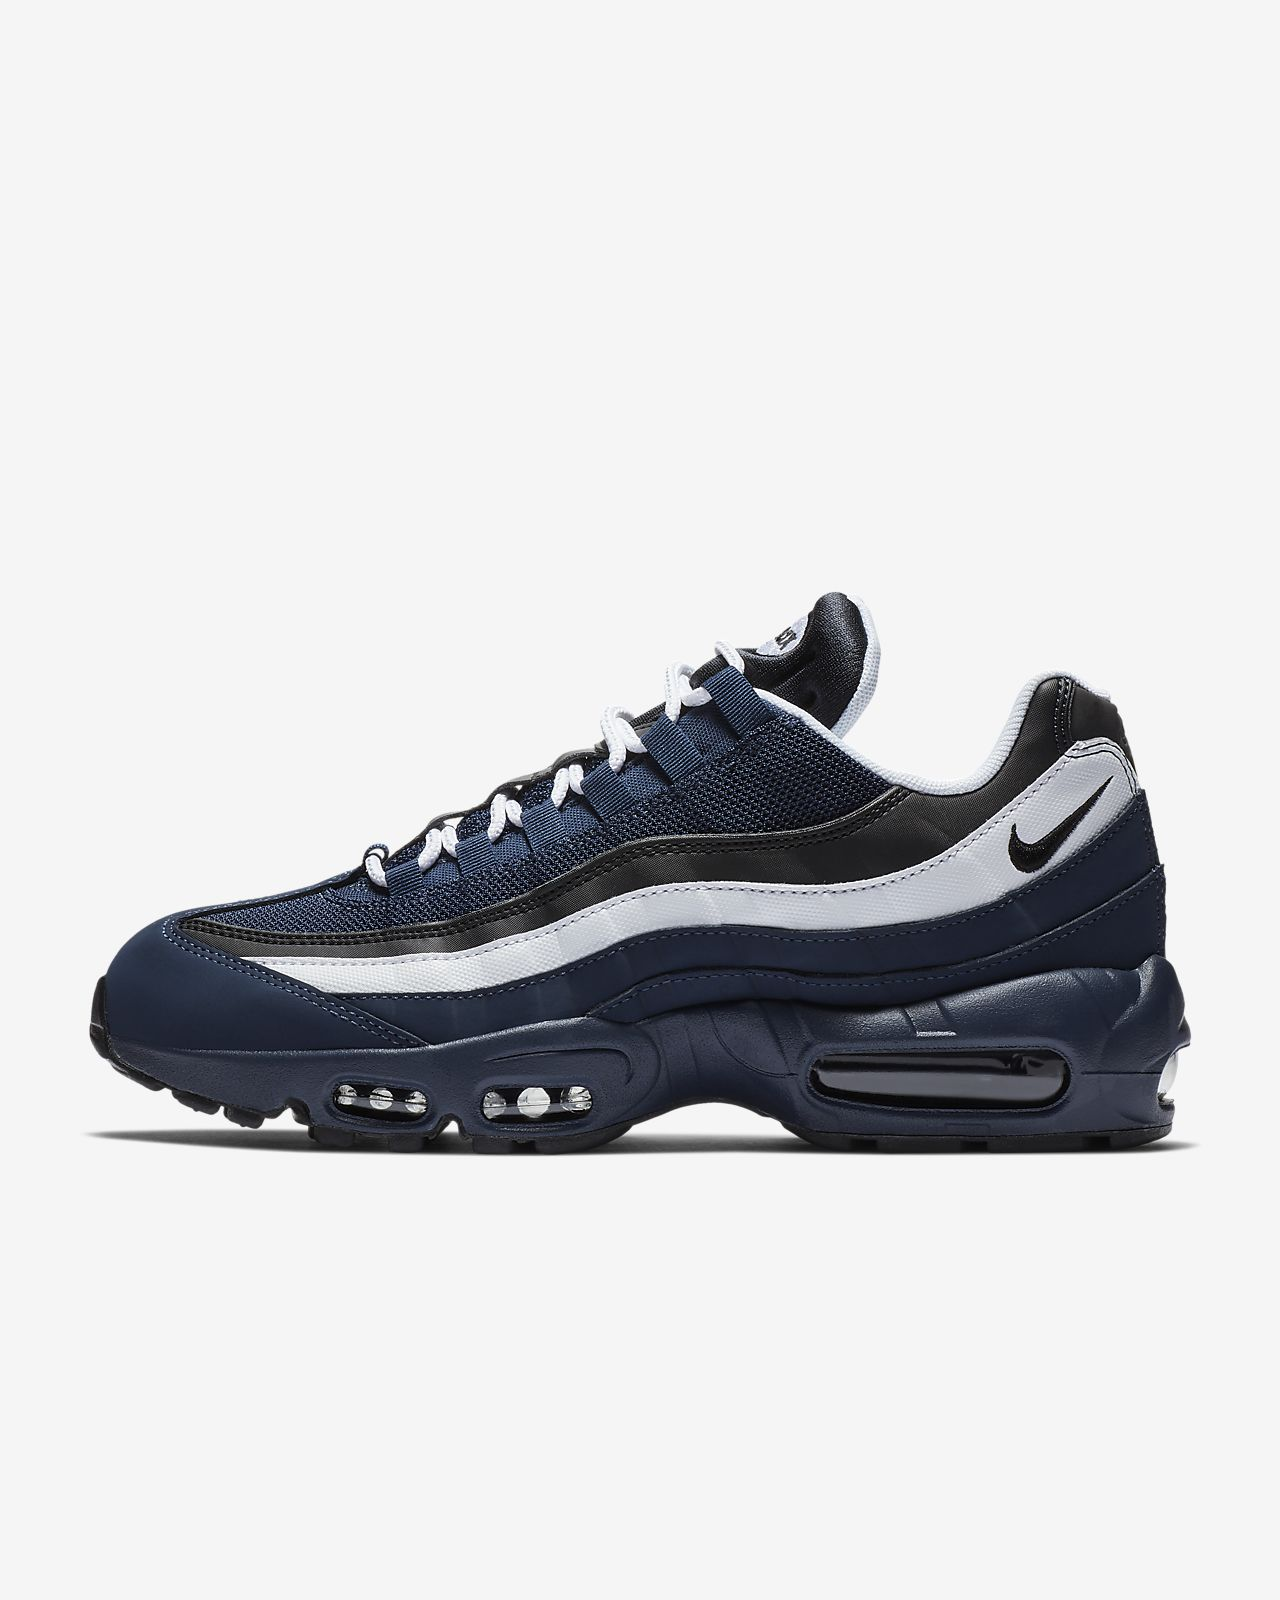 wholesale dealer 735ba f5436 ... Chaussure Nike Air Max 95 Essential pour Homme